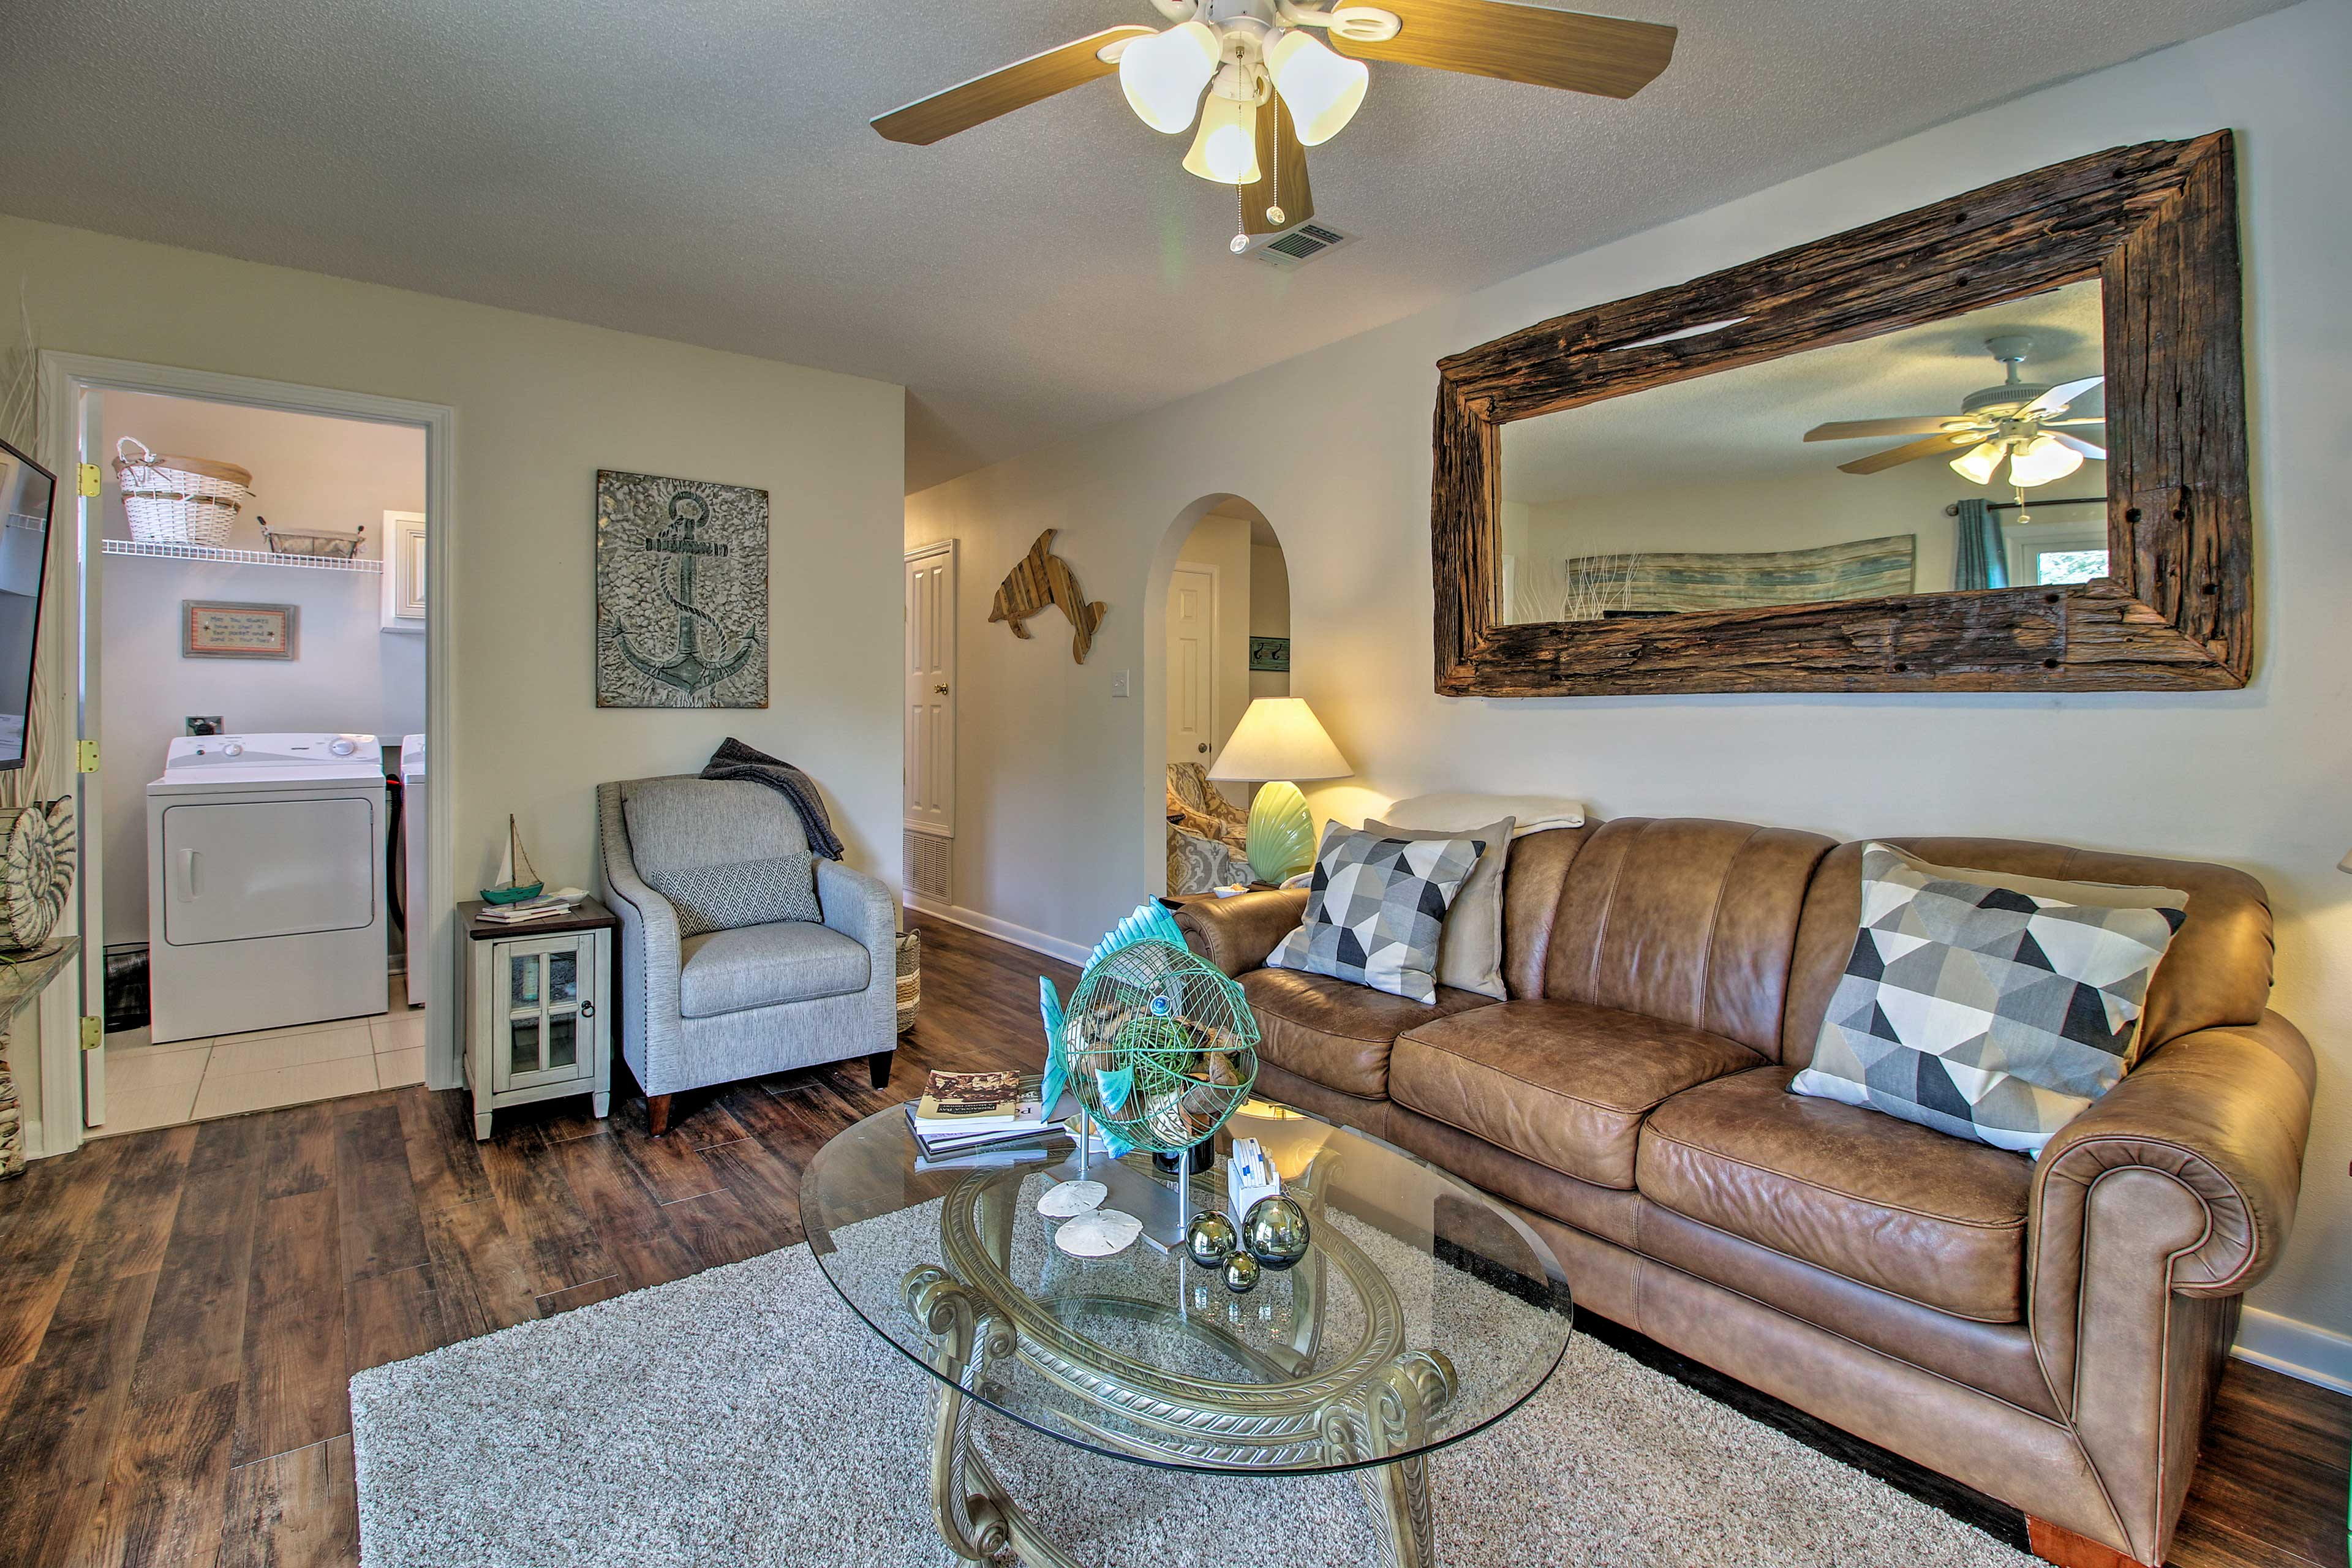 The second living area offers a sleeper sofa.